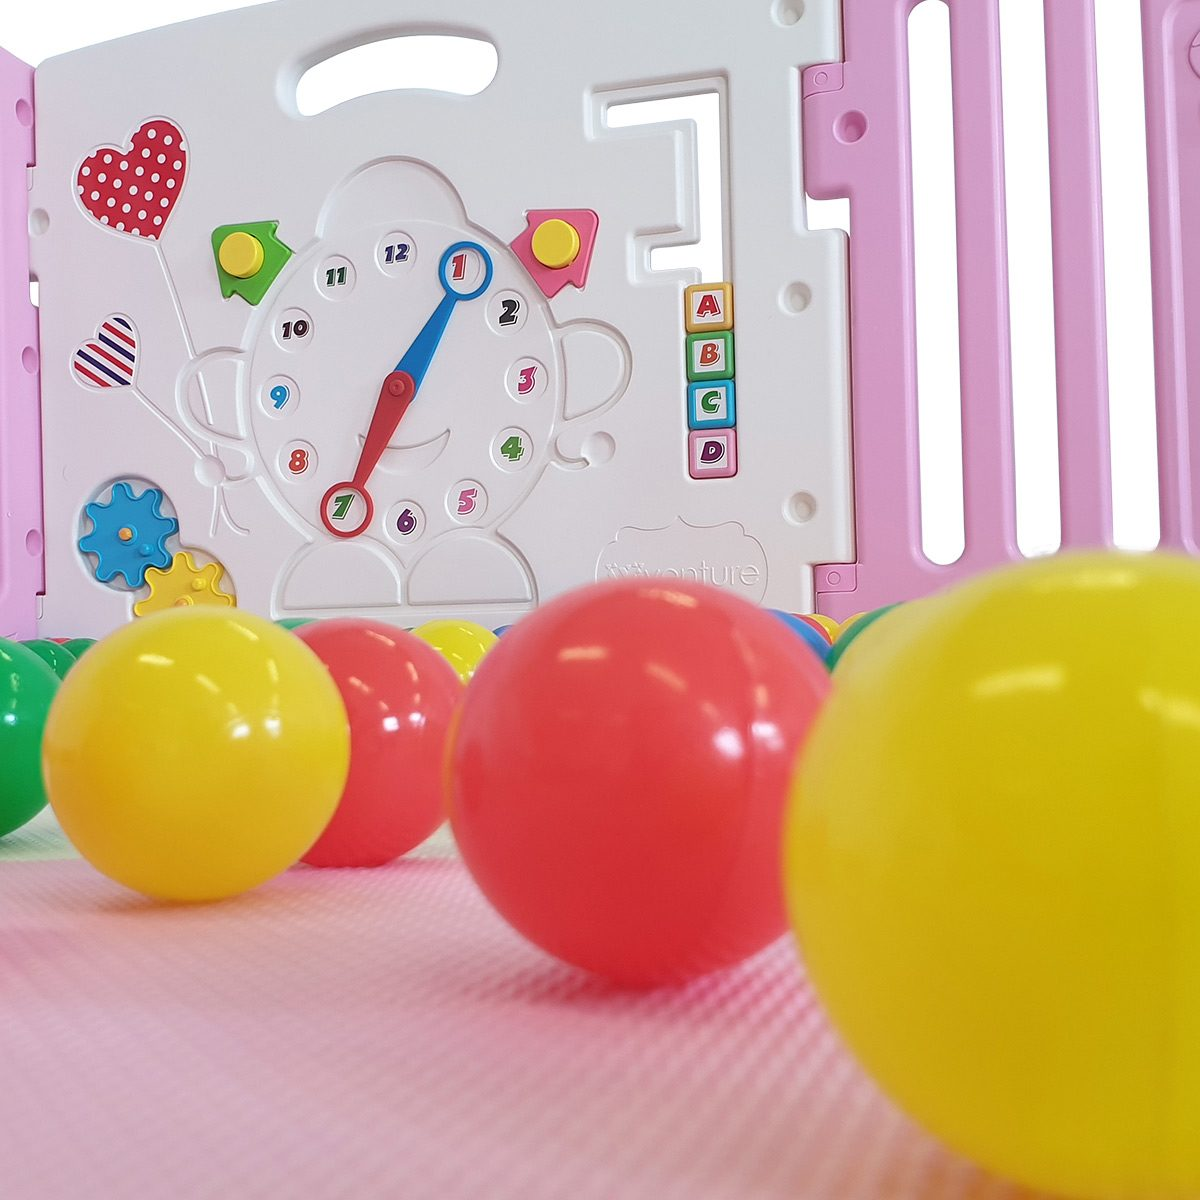 The Venture All Stars DUO Pink baby playpen is packed full of fun and enjoyment.